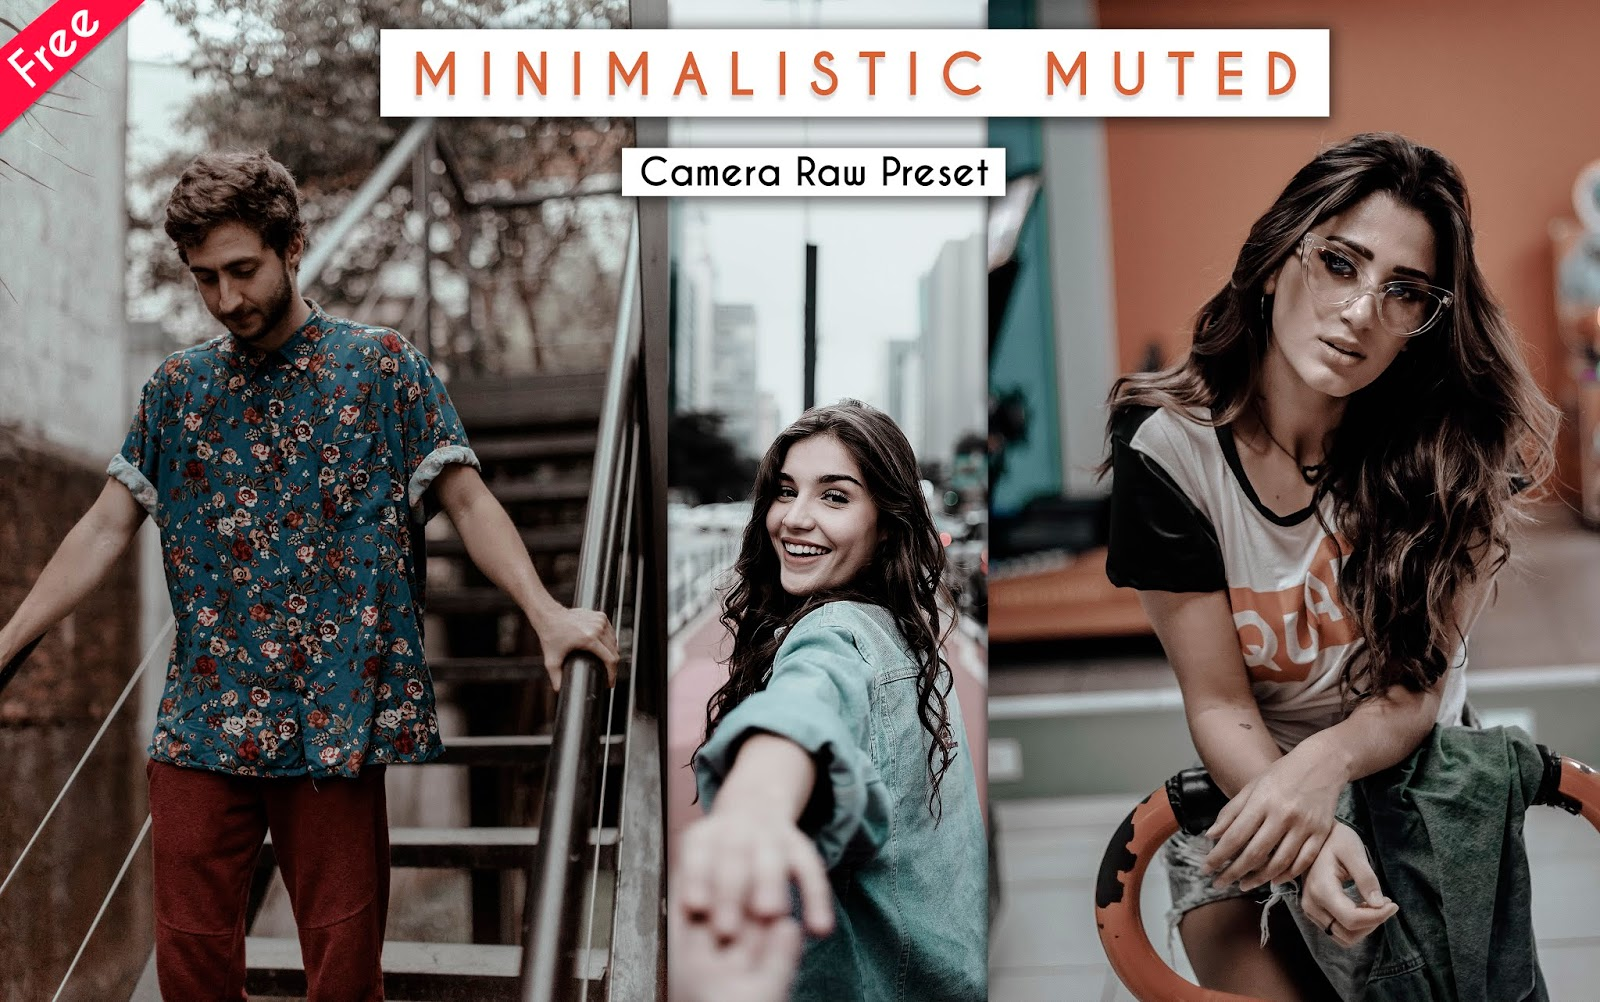 Download Minimalistic Muted Camera Raw Preset for Free | How to Edit Your Photos Like Minimalistic Muted Effect in Photoshop